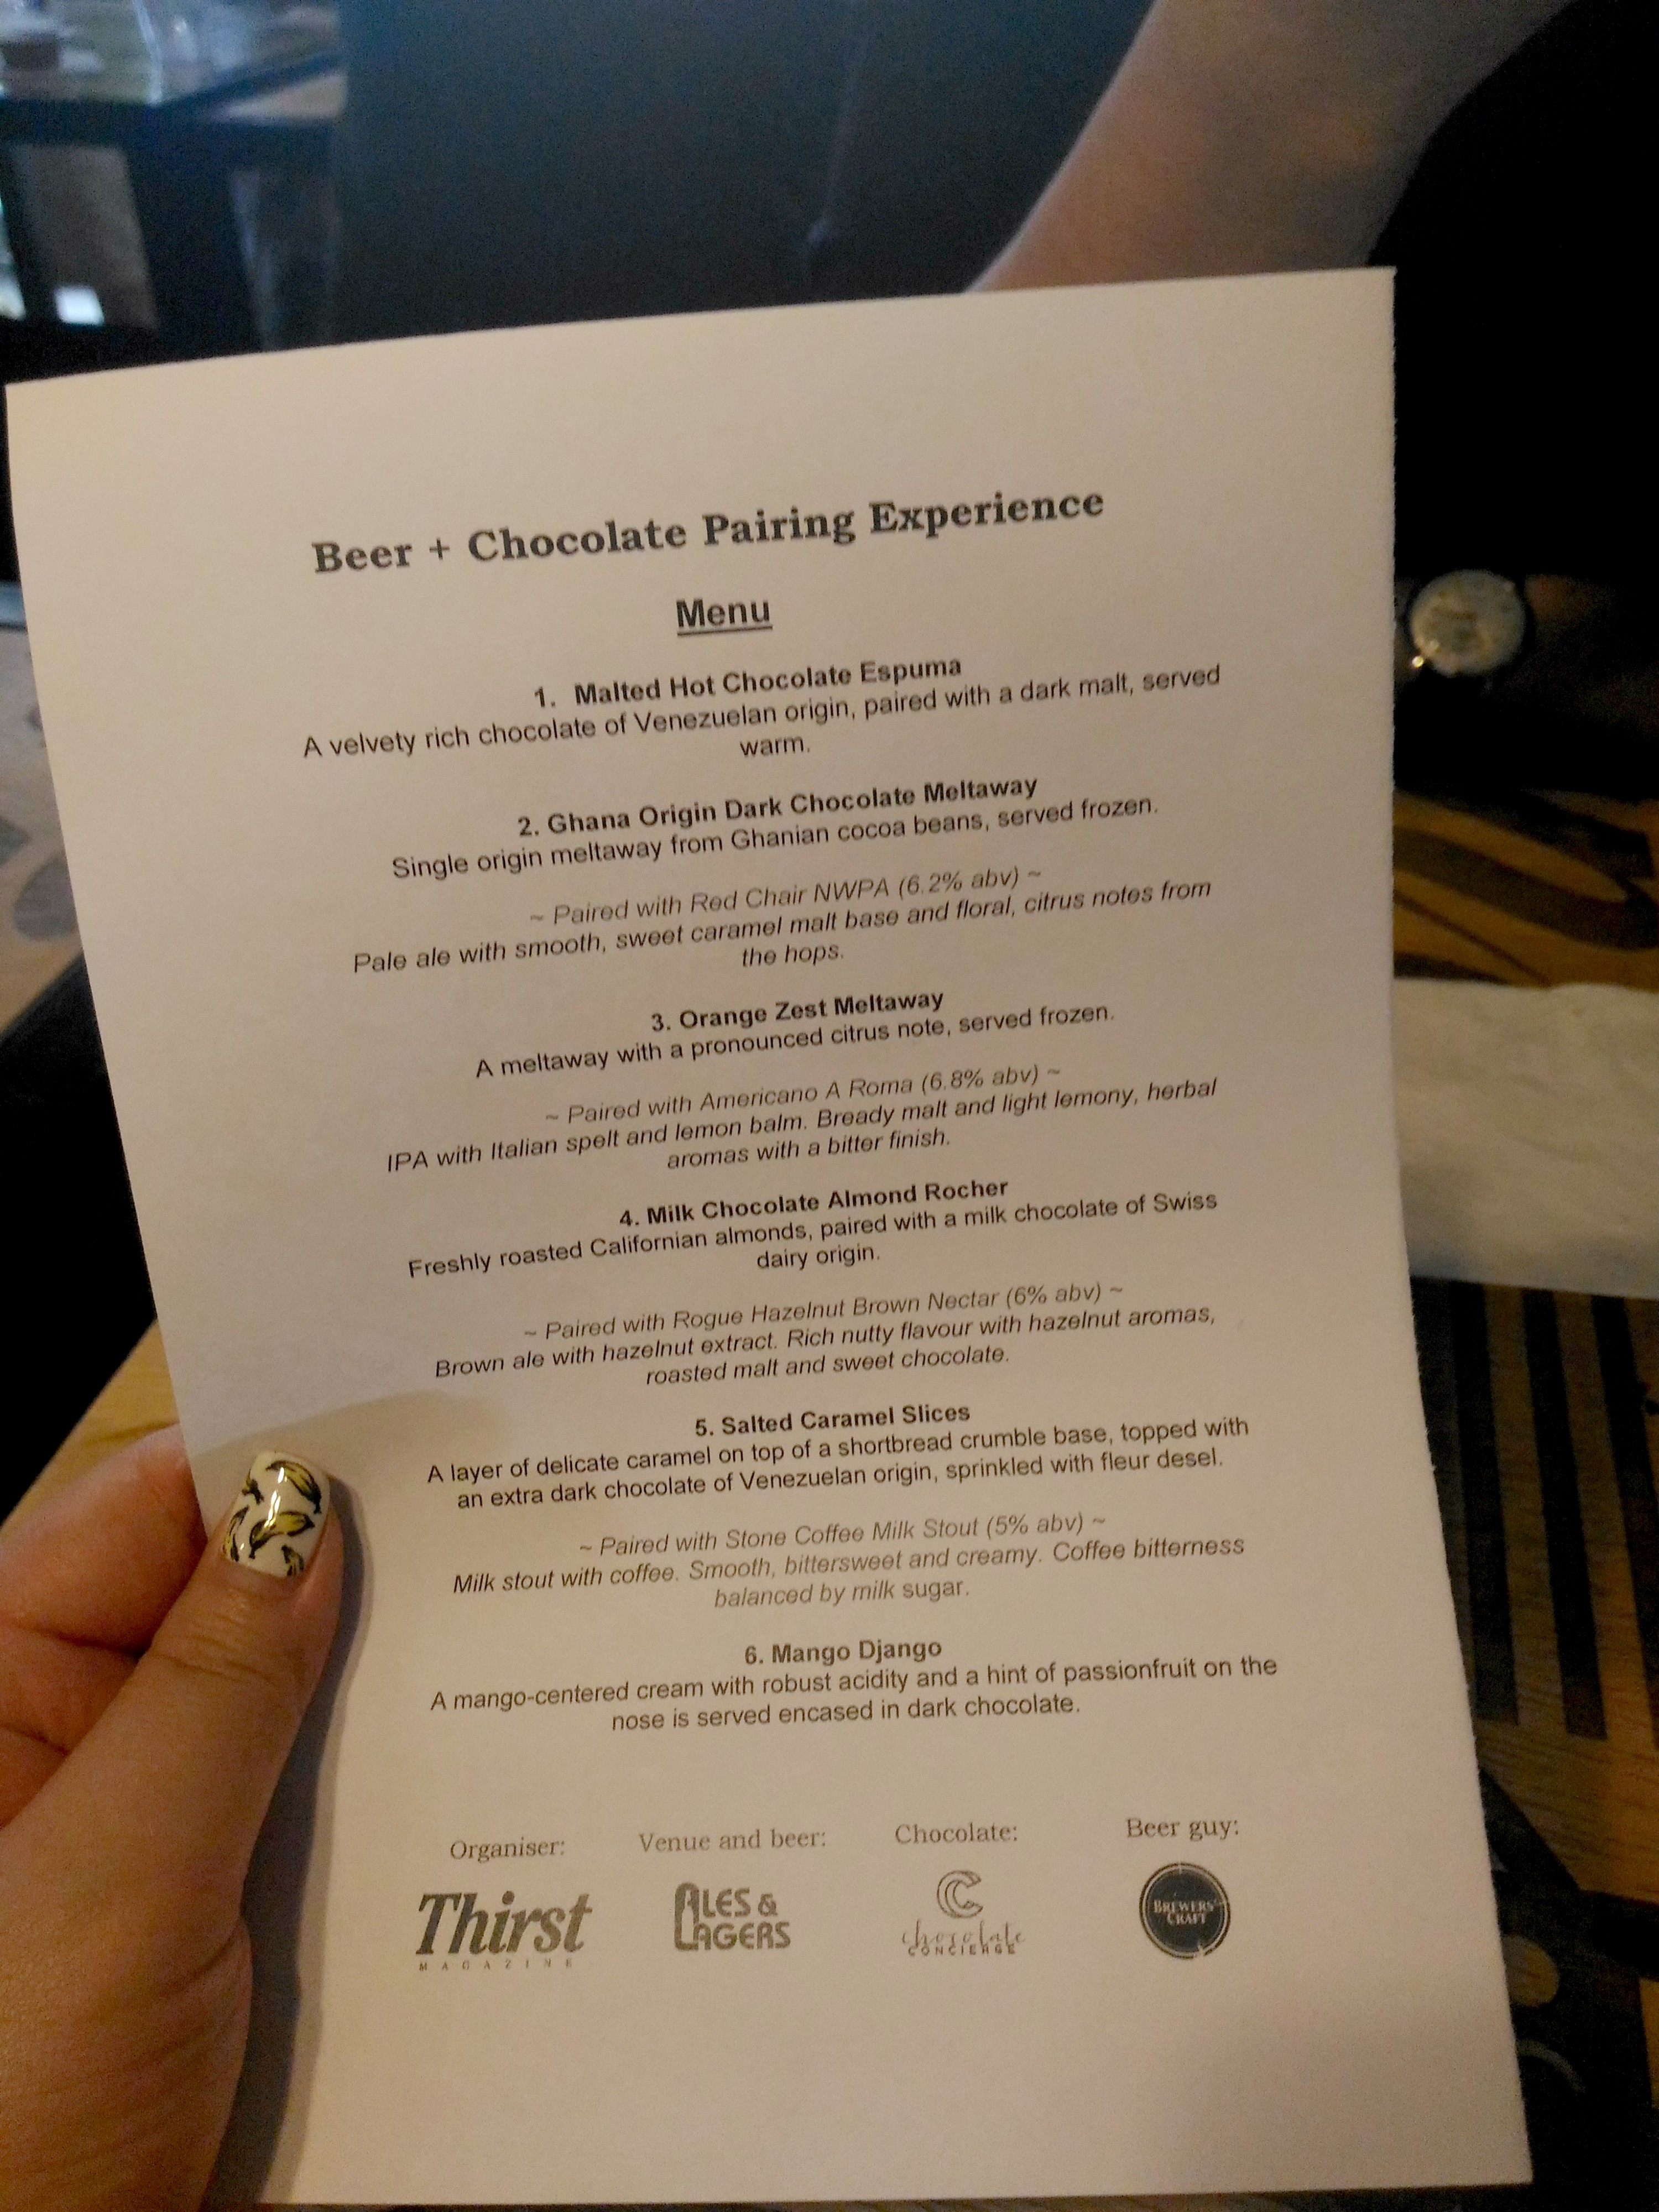 red chair nwpa abv houston office chairs thirst magazine presents beer 43 chocolate pairing ales